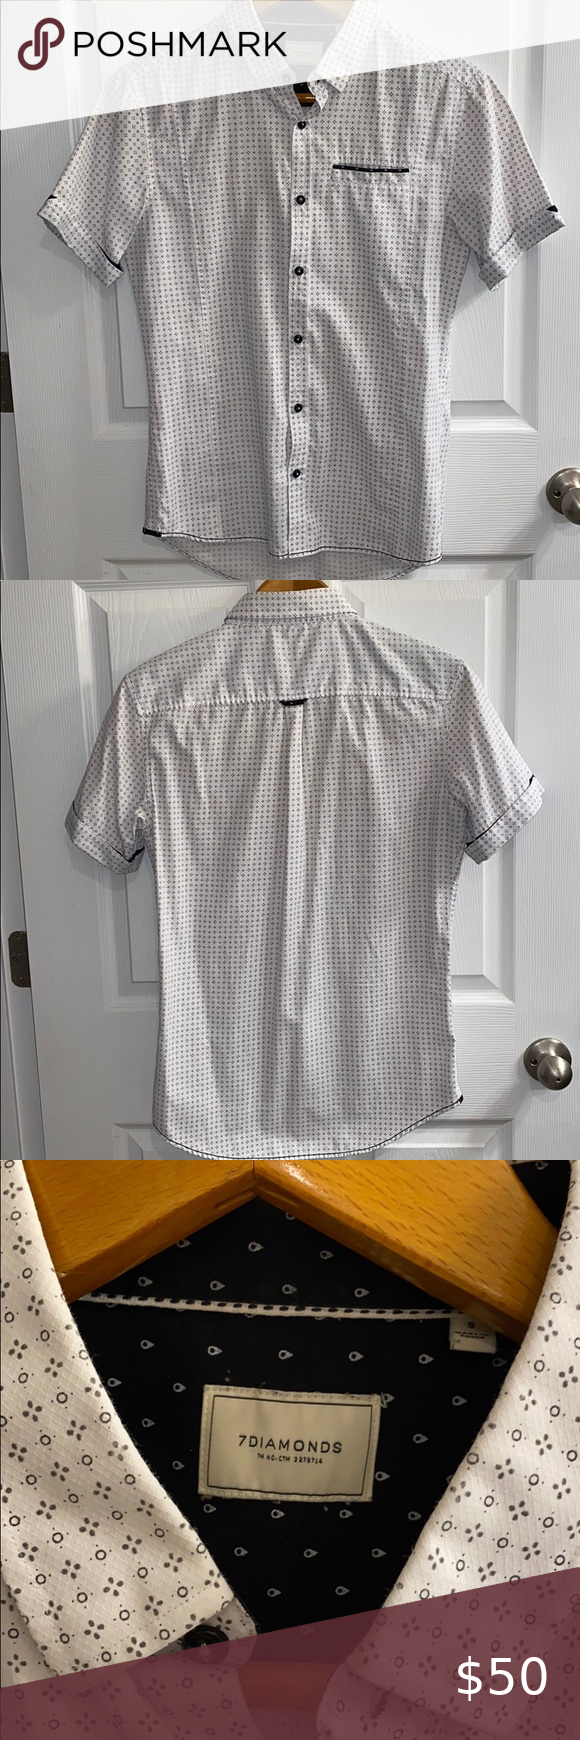 Buckle dress shirt Excellent hardly worn dress shirt maybe worn 1 time at best. ...